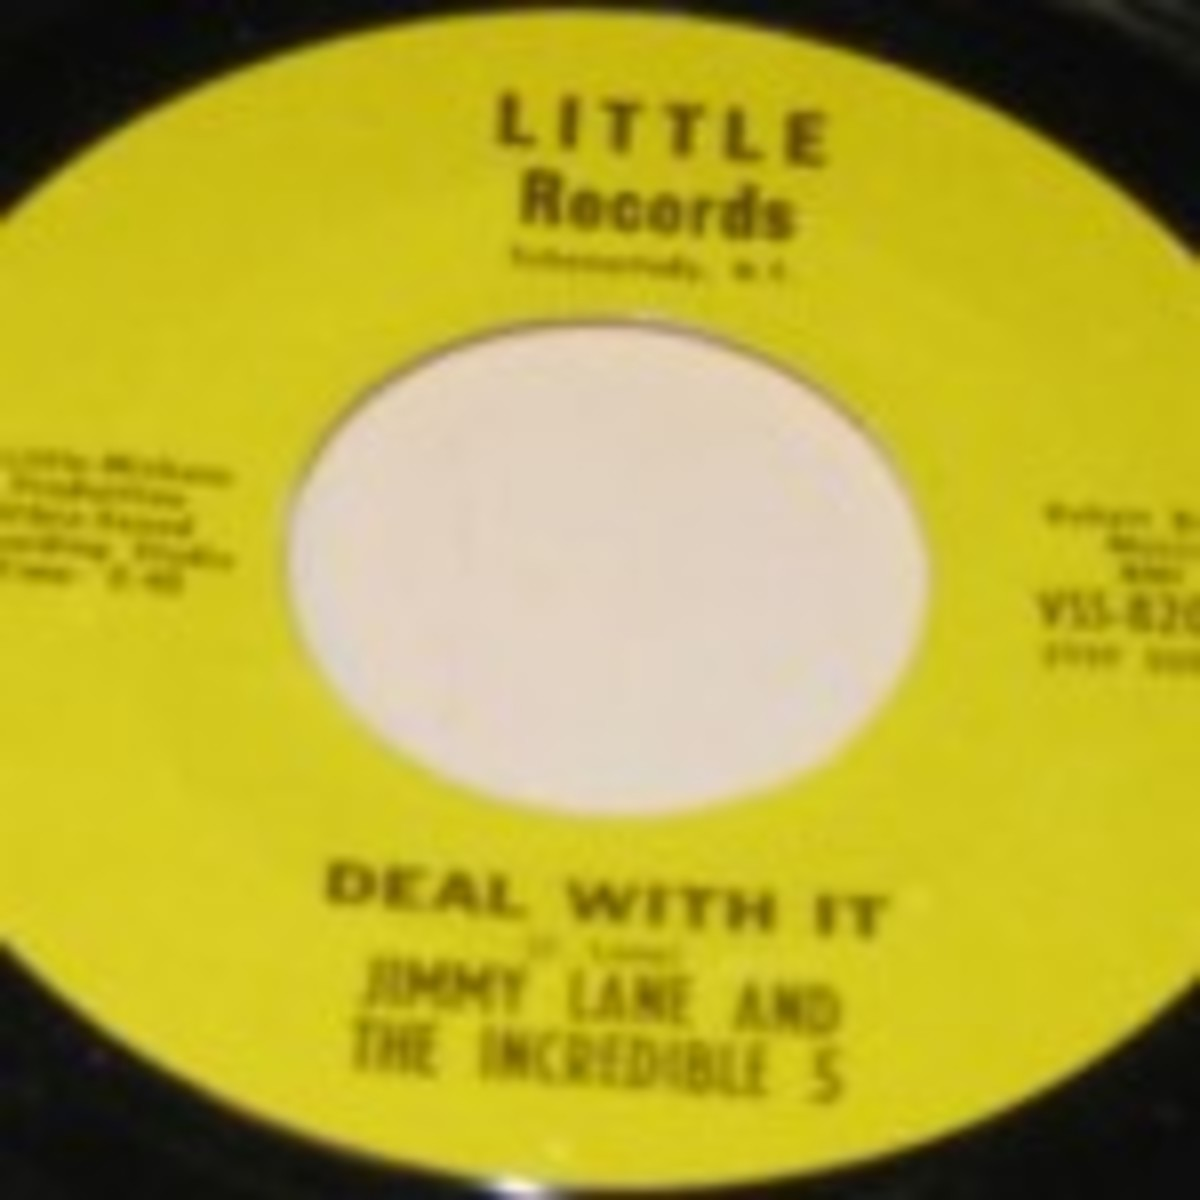 Jimmy Lane and The Incredible 5 Deal With It What Kind of Man 45